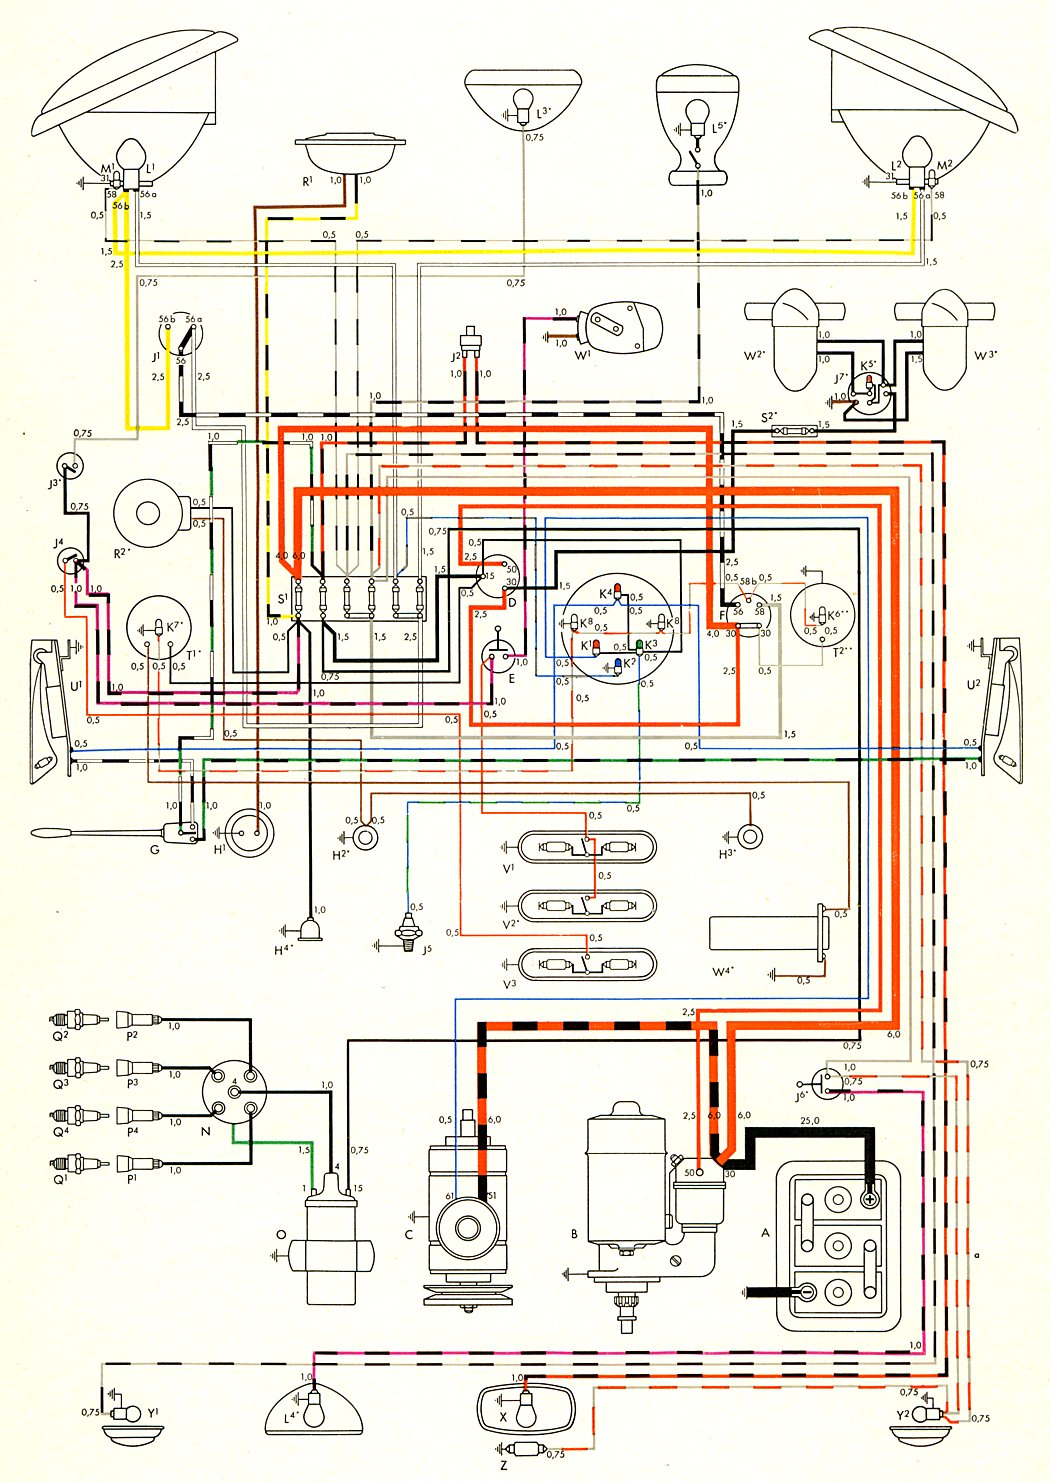 vw bug engine diagram  vw  free engine image for user